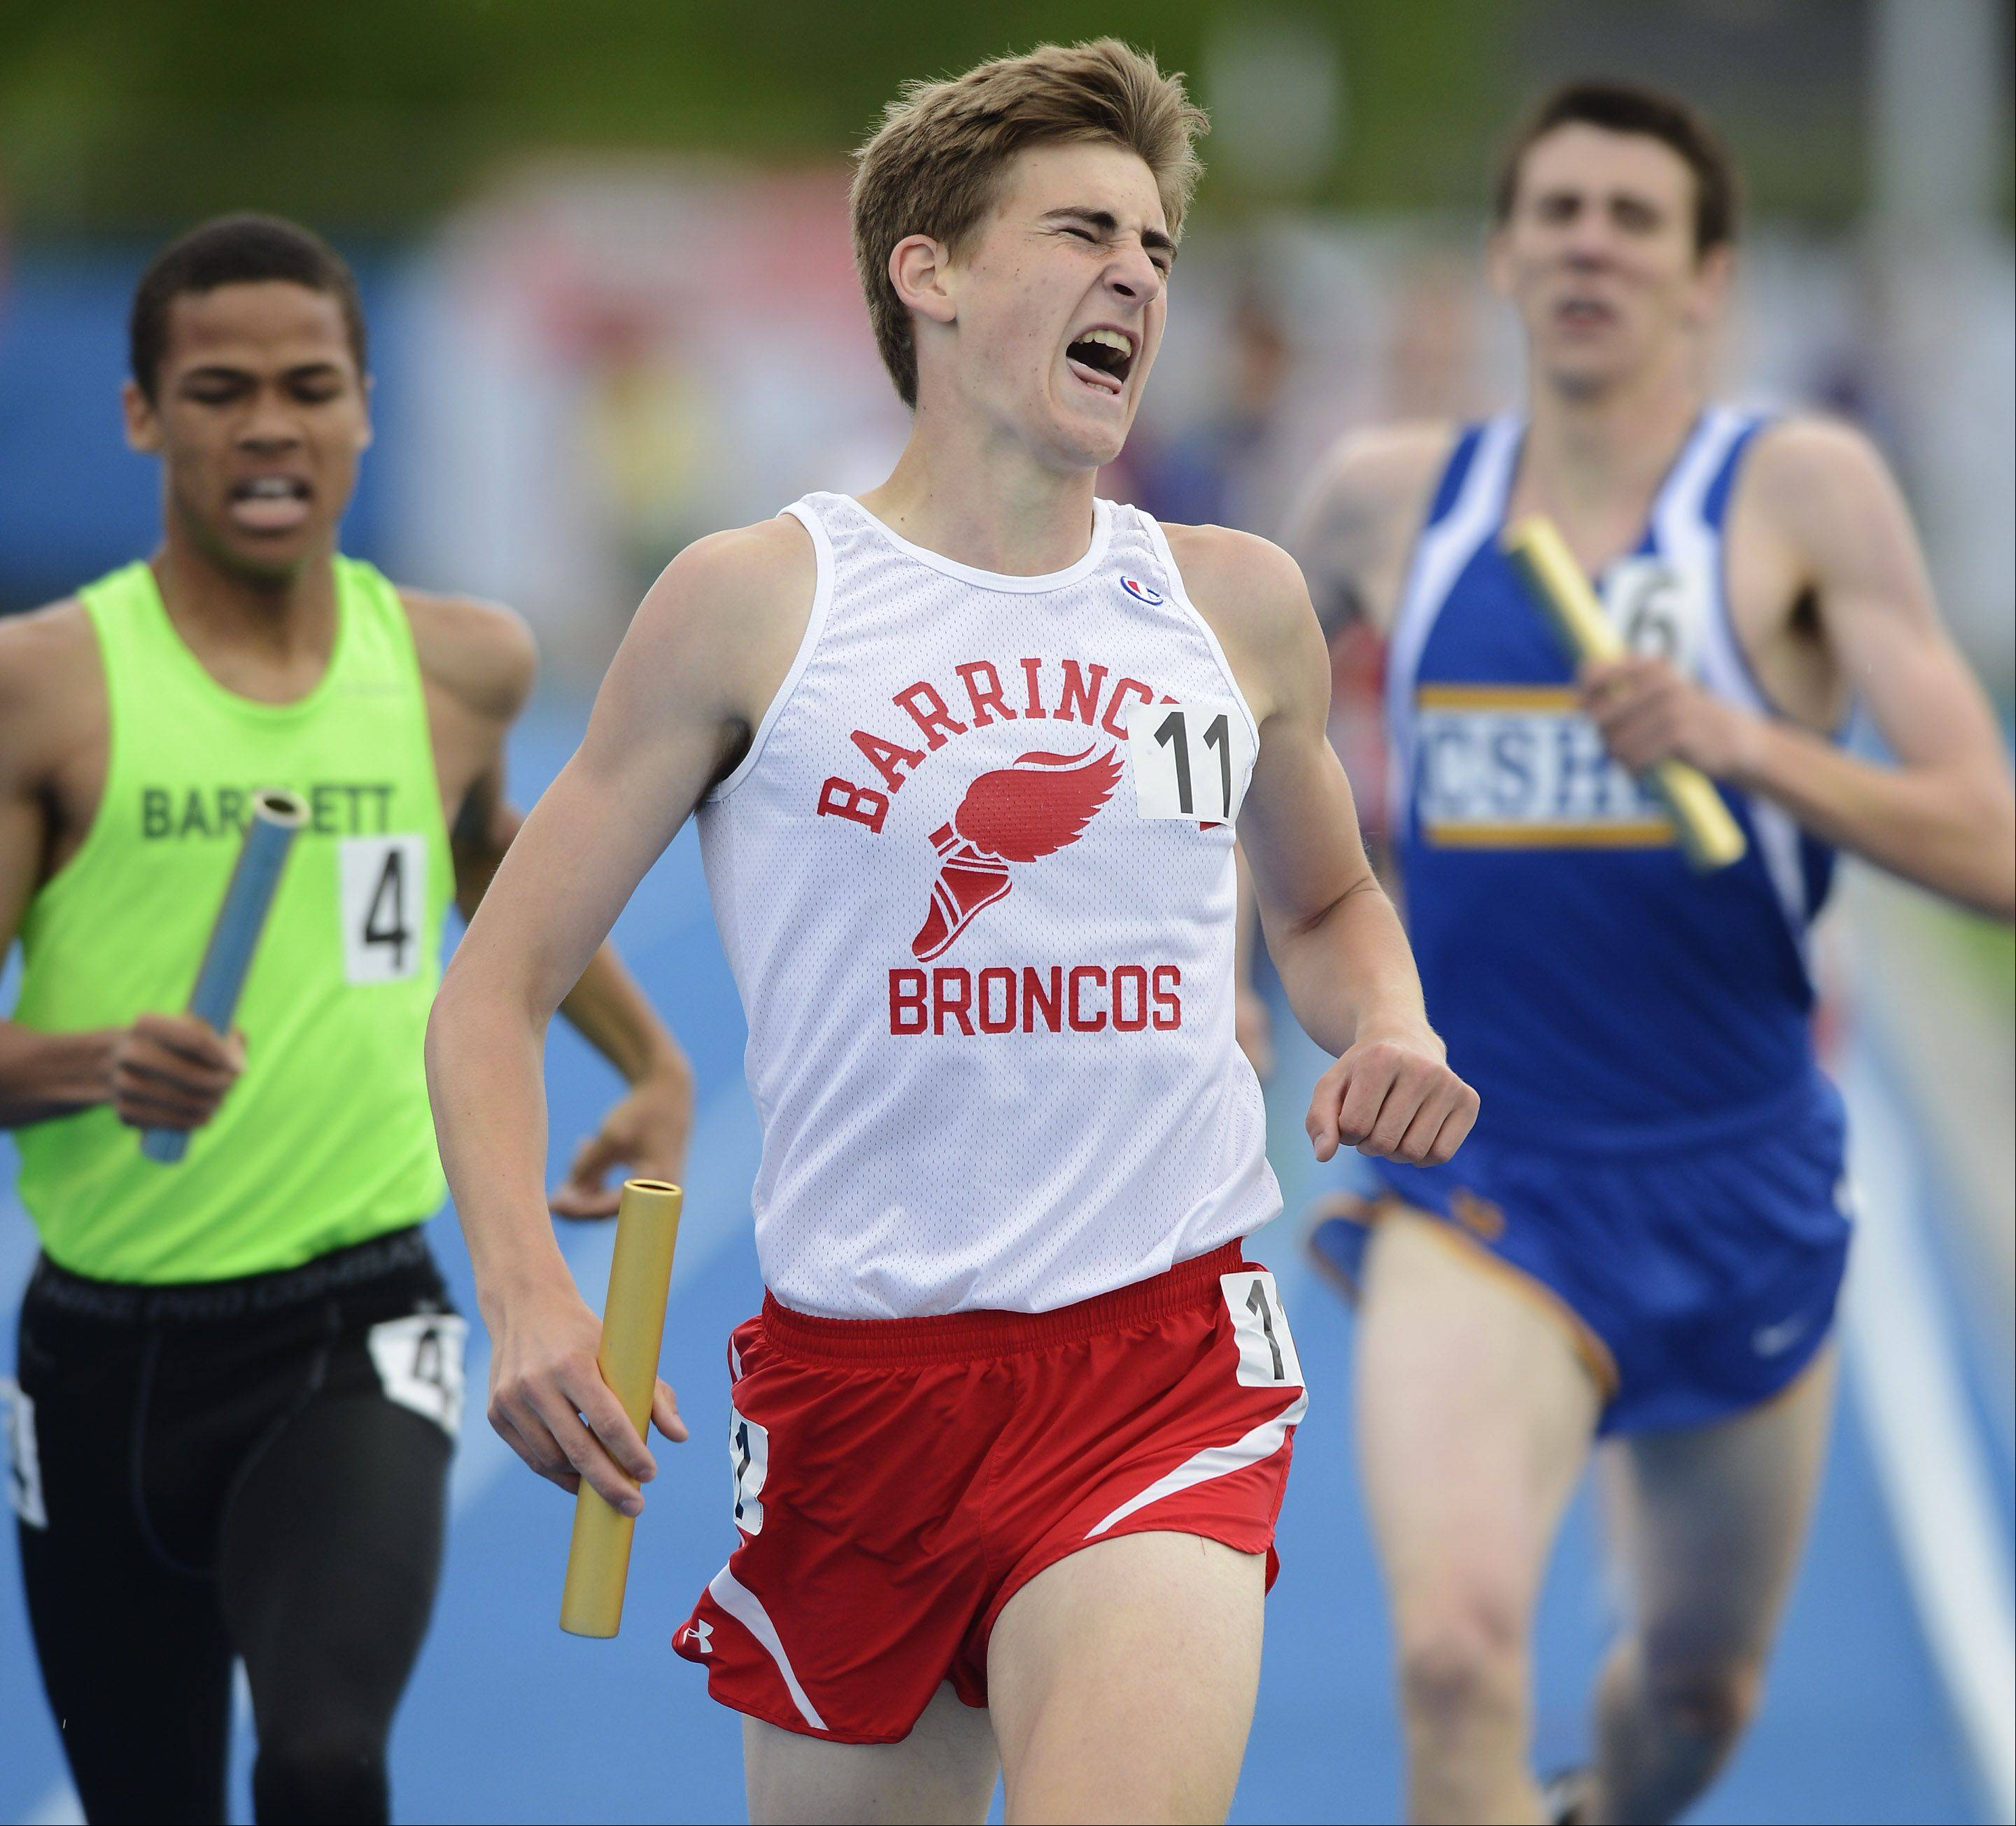 Barrington's Konrad Eiring crosses the finish line as the Brocos win the Class 3A 4x800-meter relay during the boys state track finals in Charleston Saturday.